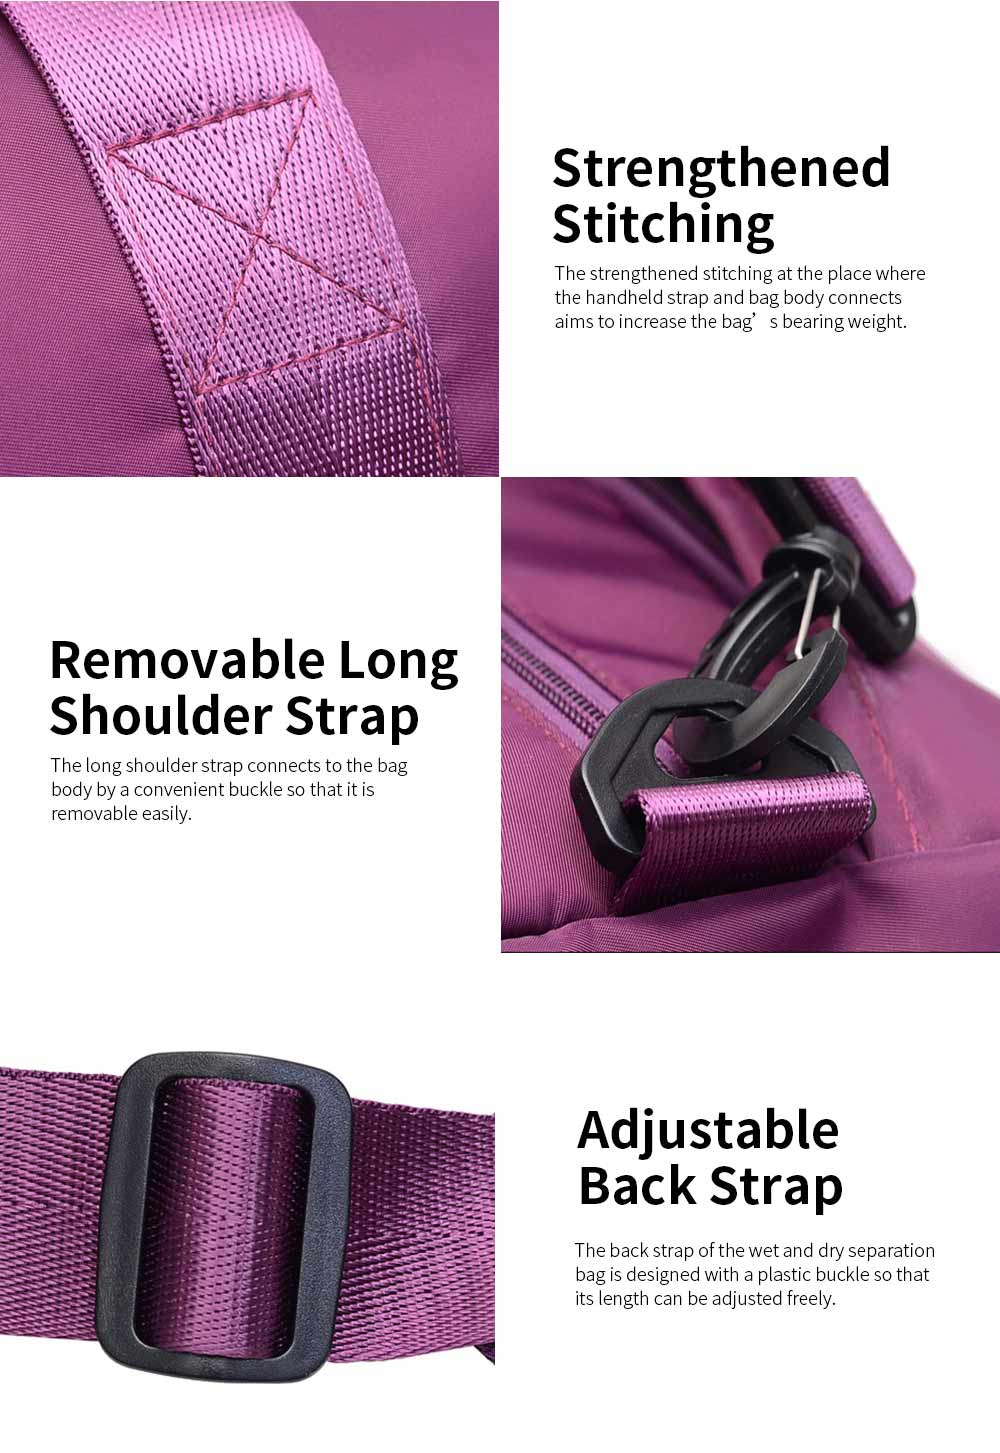 Foldable Wet and Dry Separation Bag for Gym Exercises Yoga Sports Waterproof Nylon-made Sport Pack Large Capacity Breathable Wear Resistant Travelling Bag Gym Bag 3